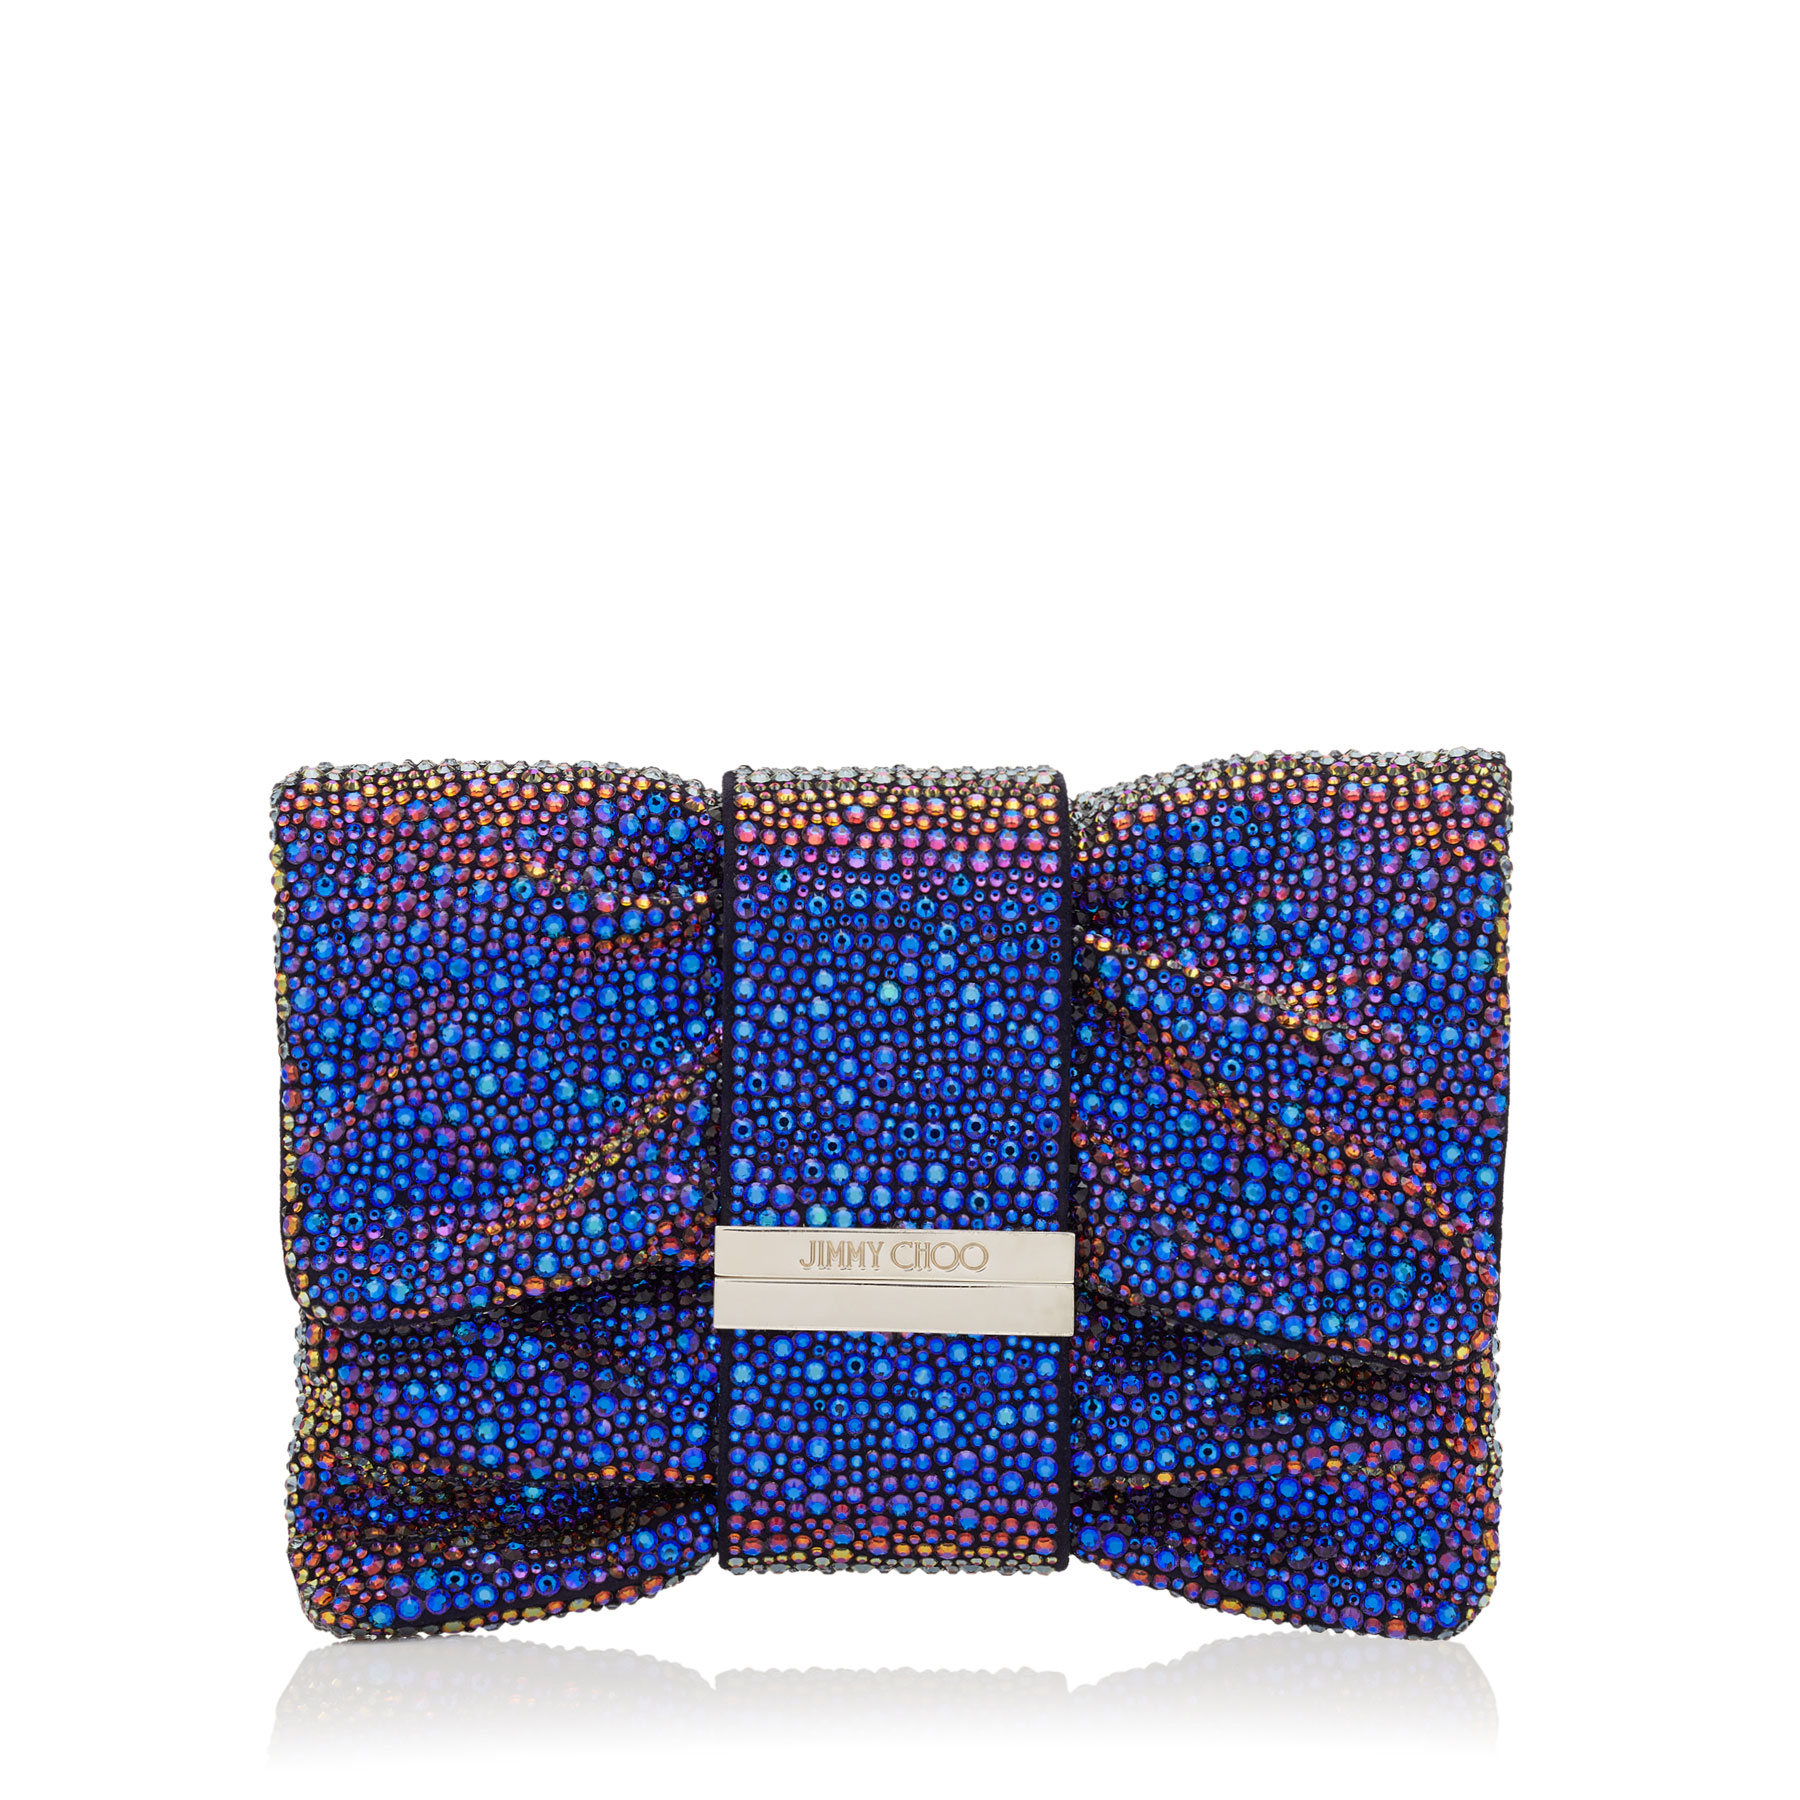 CHANDRA/S Madeline Mix Holographic Multi Crystals Clutch Bag with Multi Hotfix Bracelet